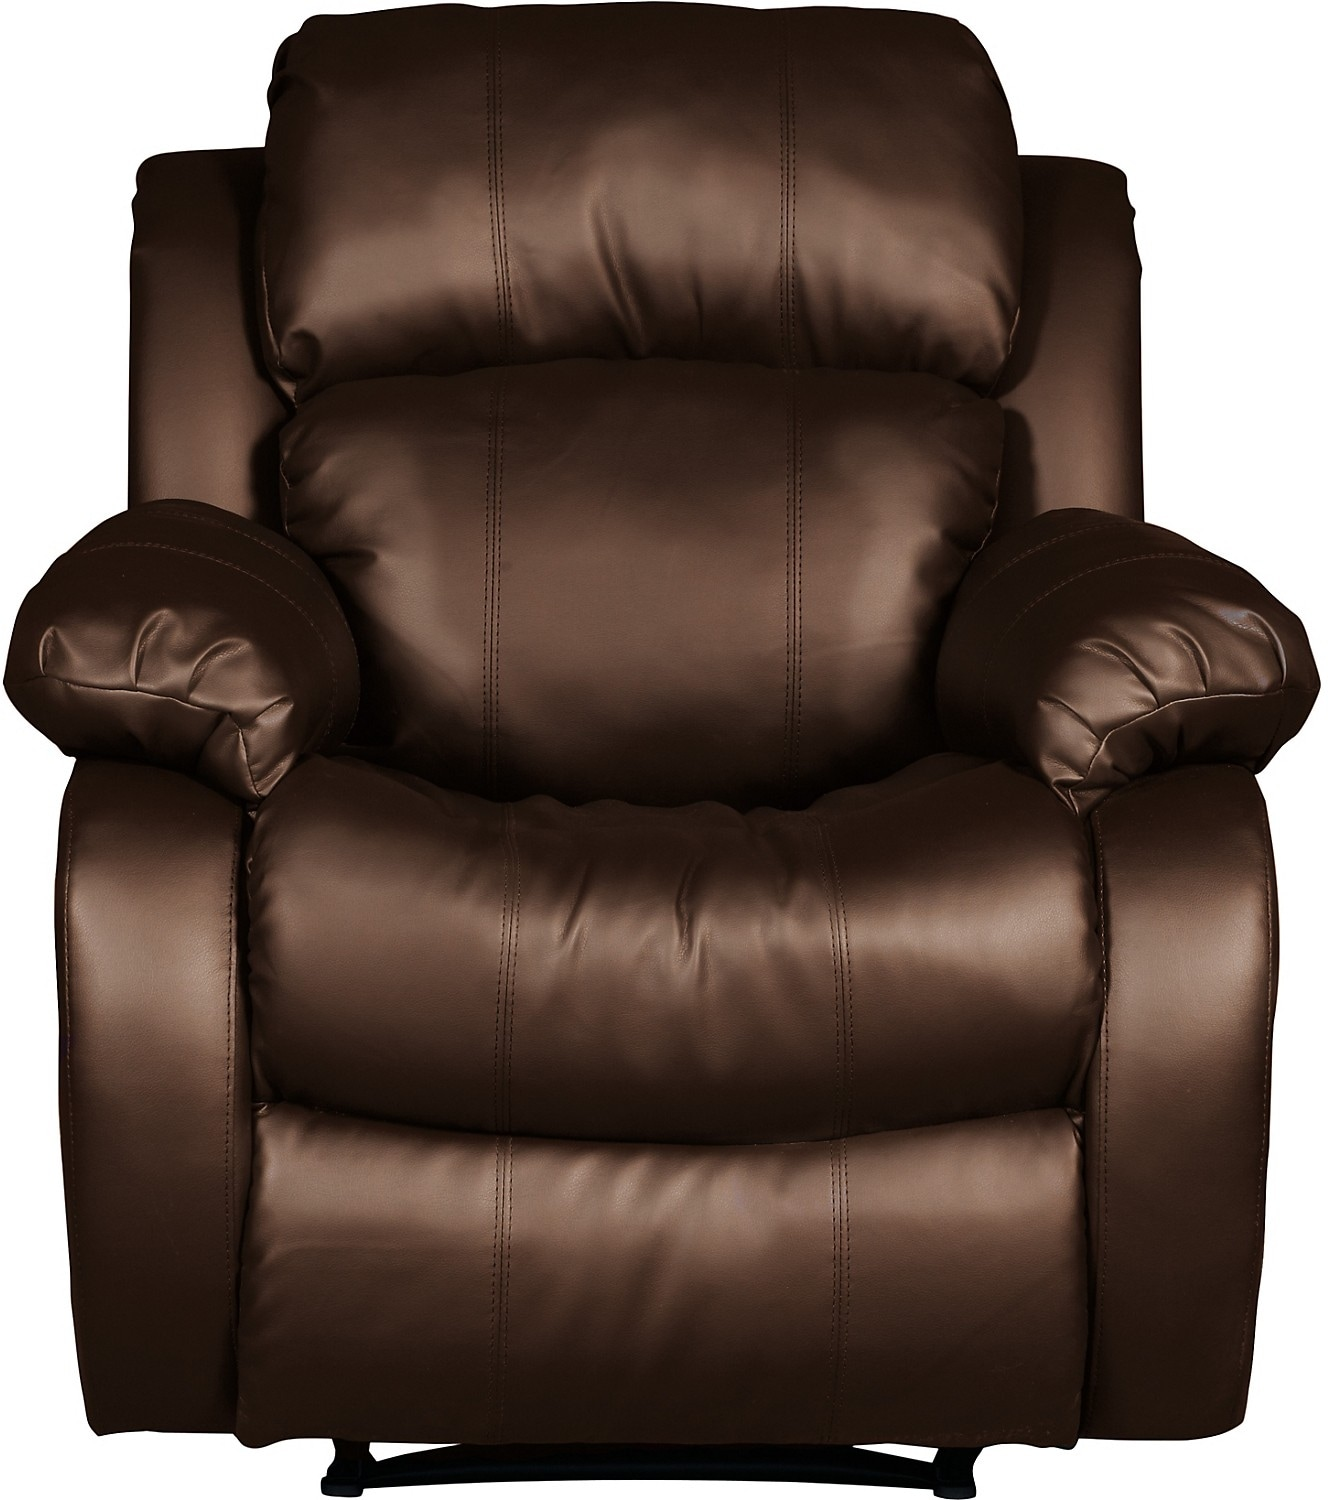 Omega 2 Bonded Leather Reclining Chair – Brown